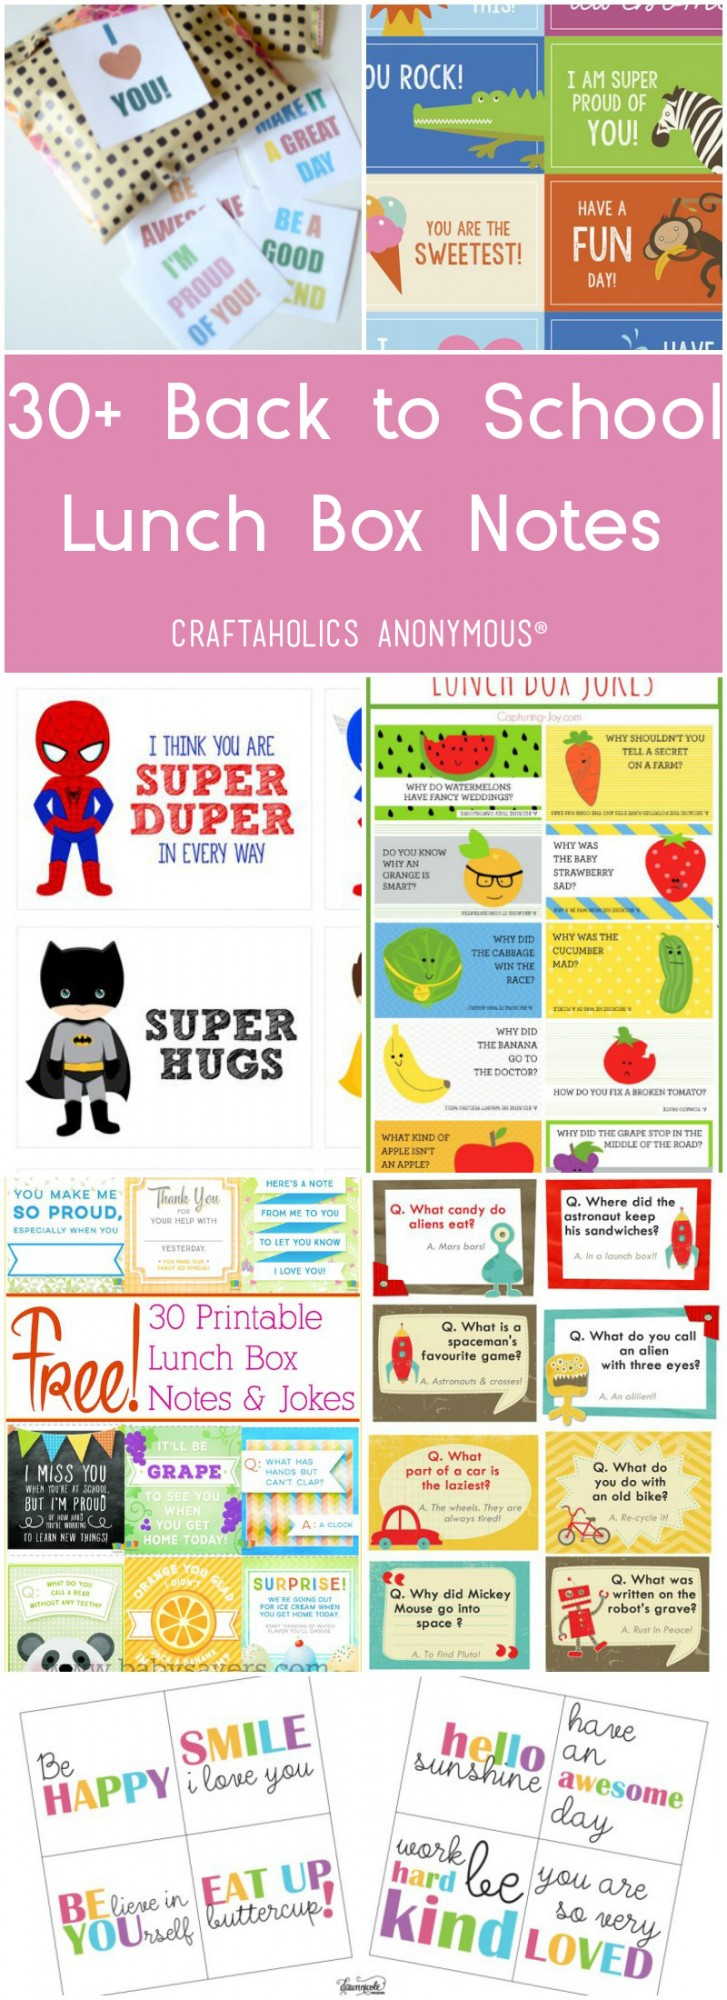 30+ Free Printable Lunch Box Notes